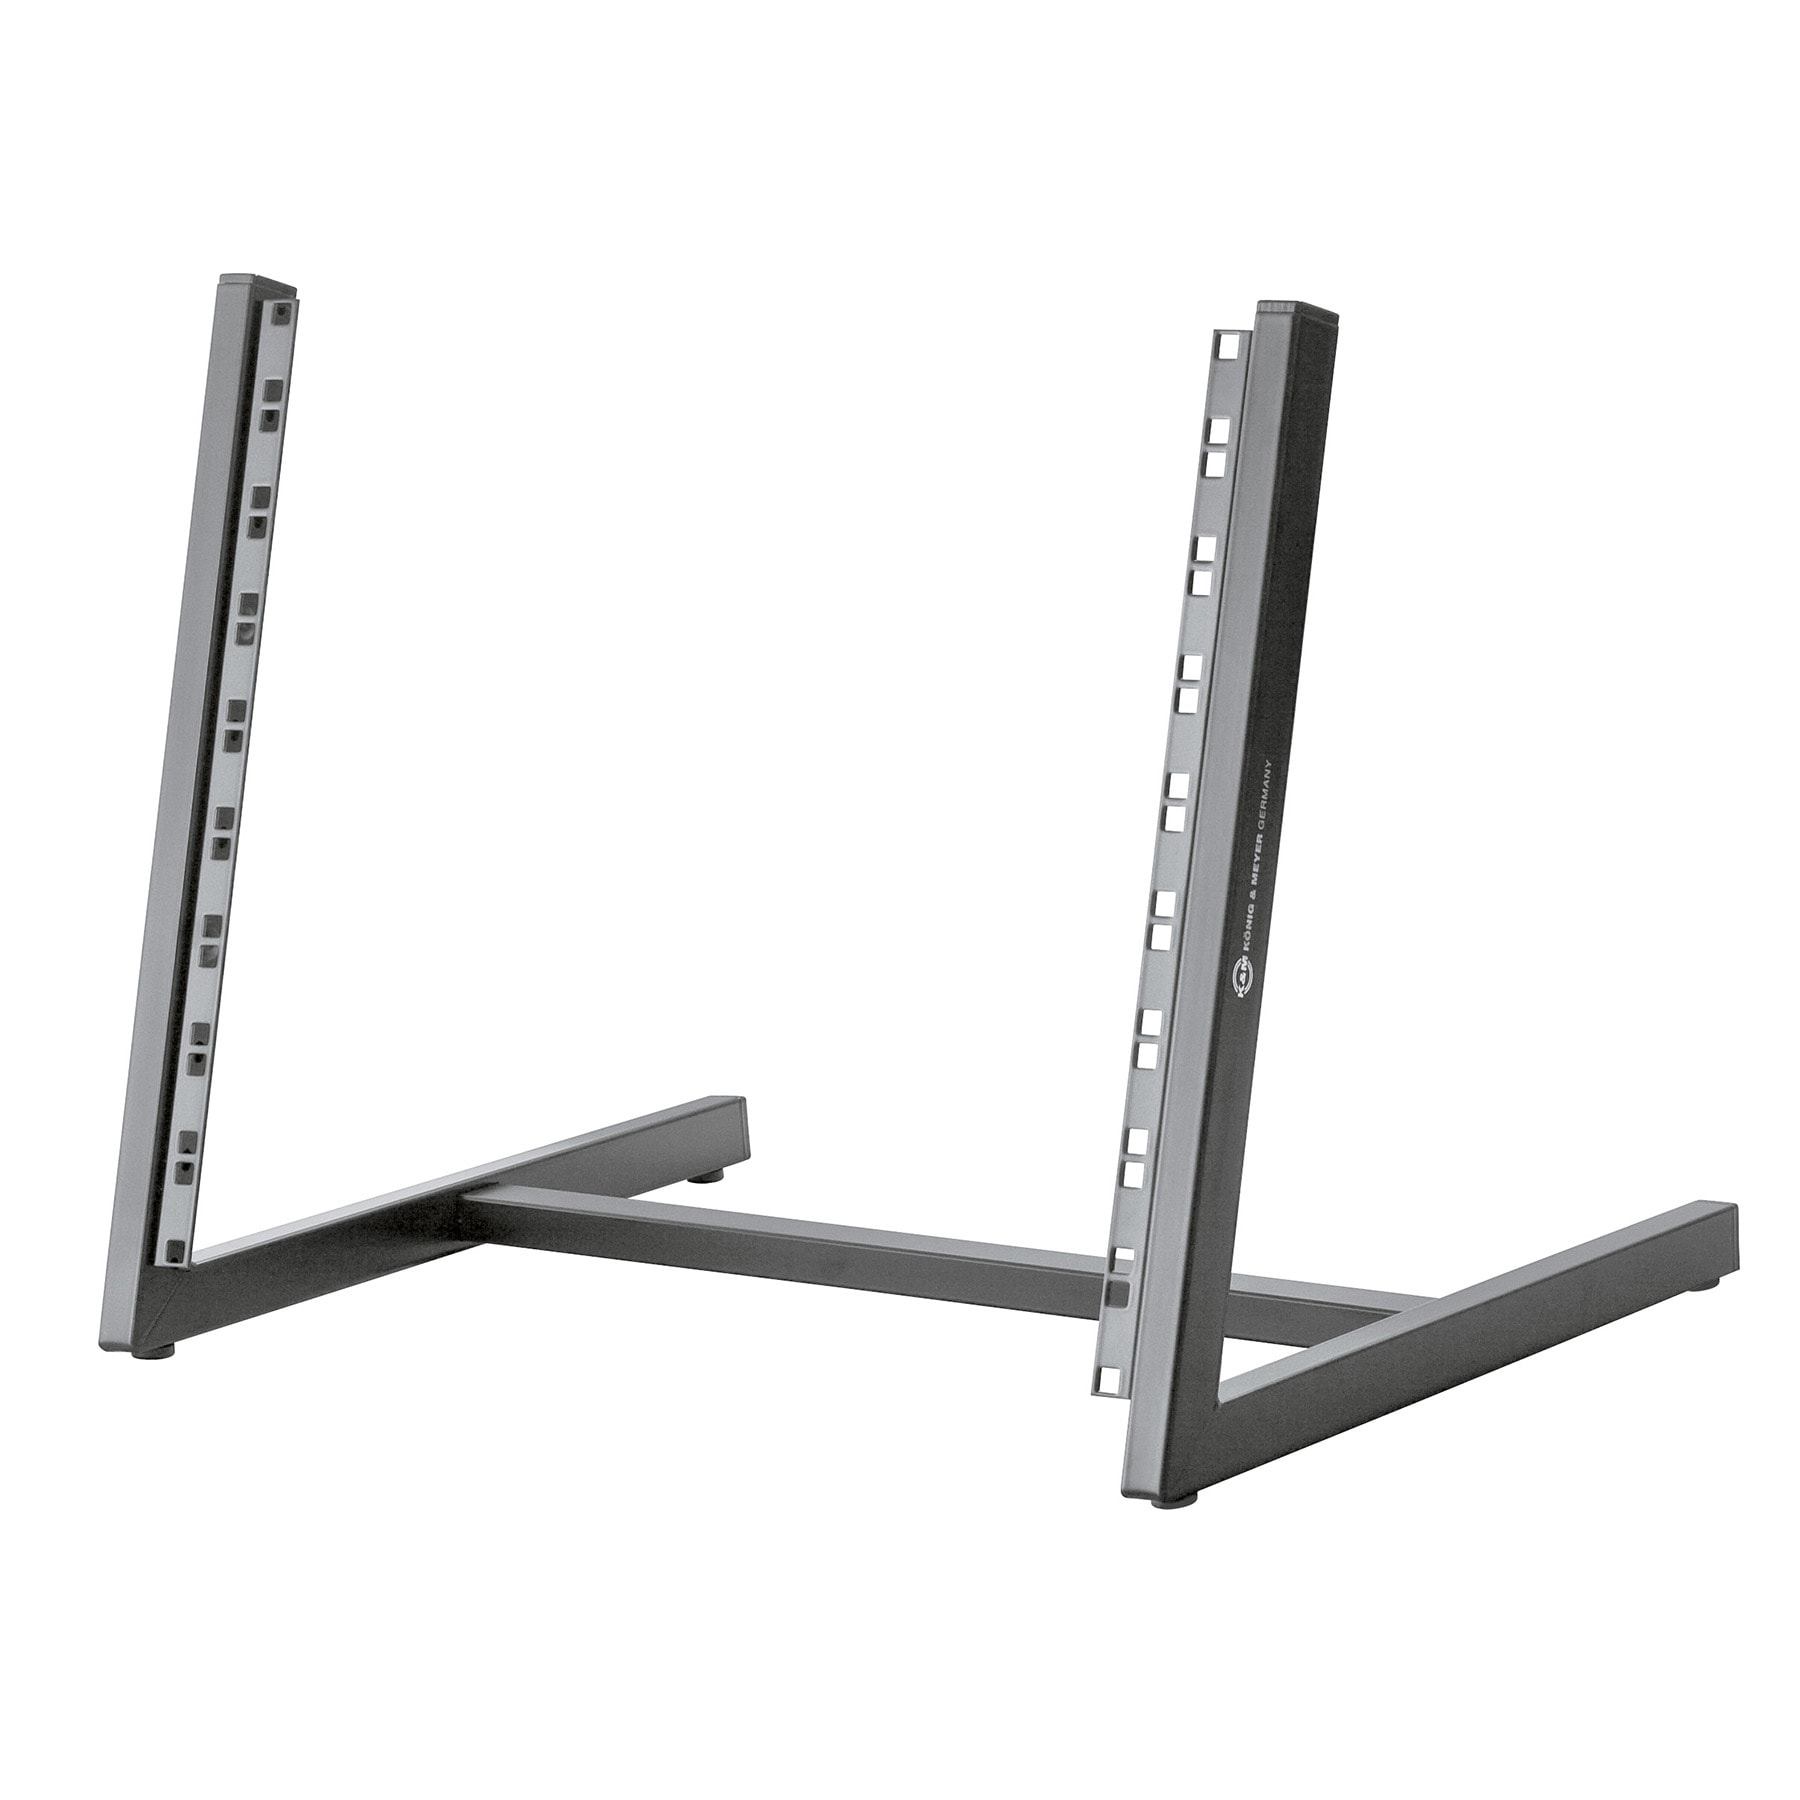 KM40900 - Rack desk stand